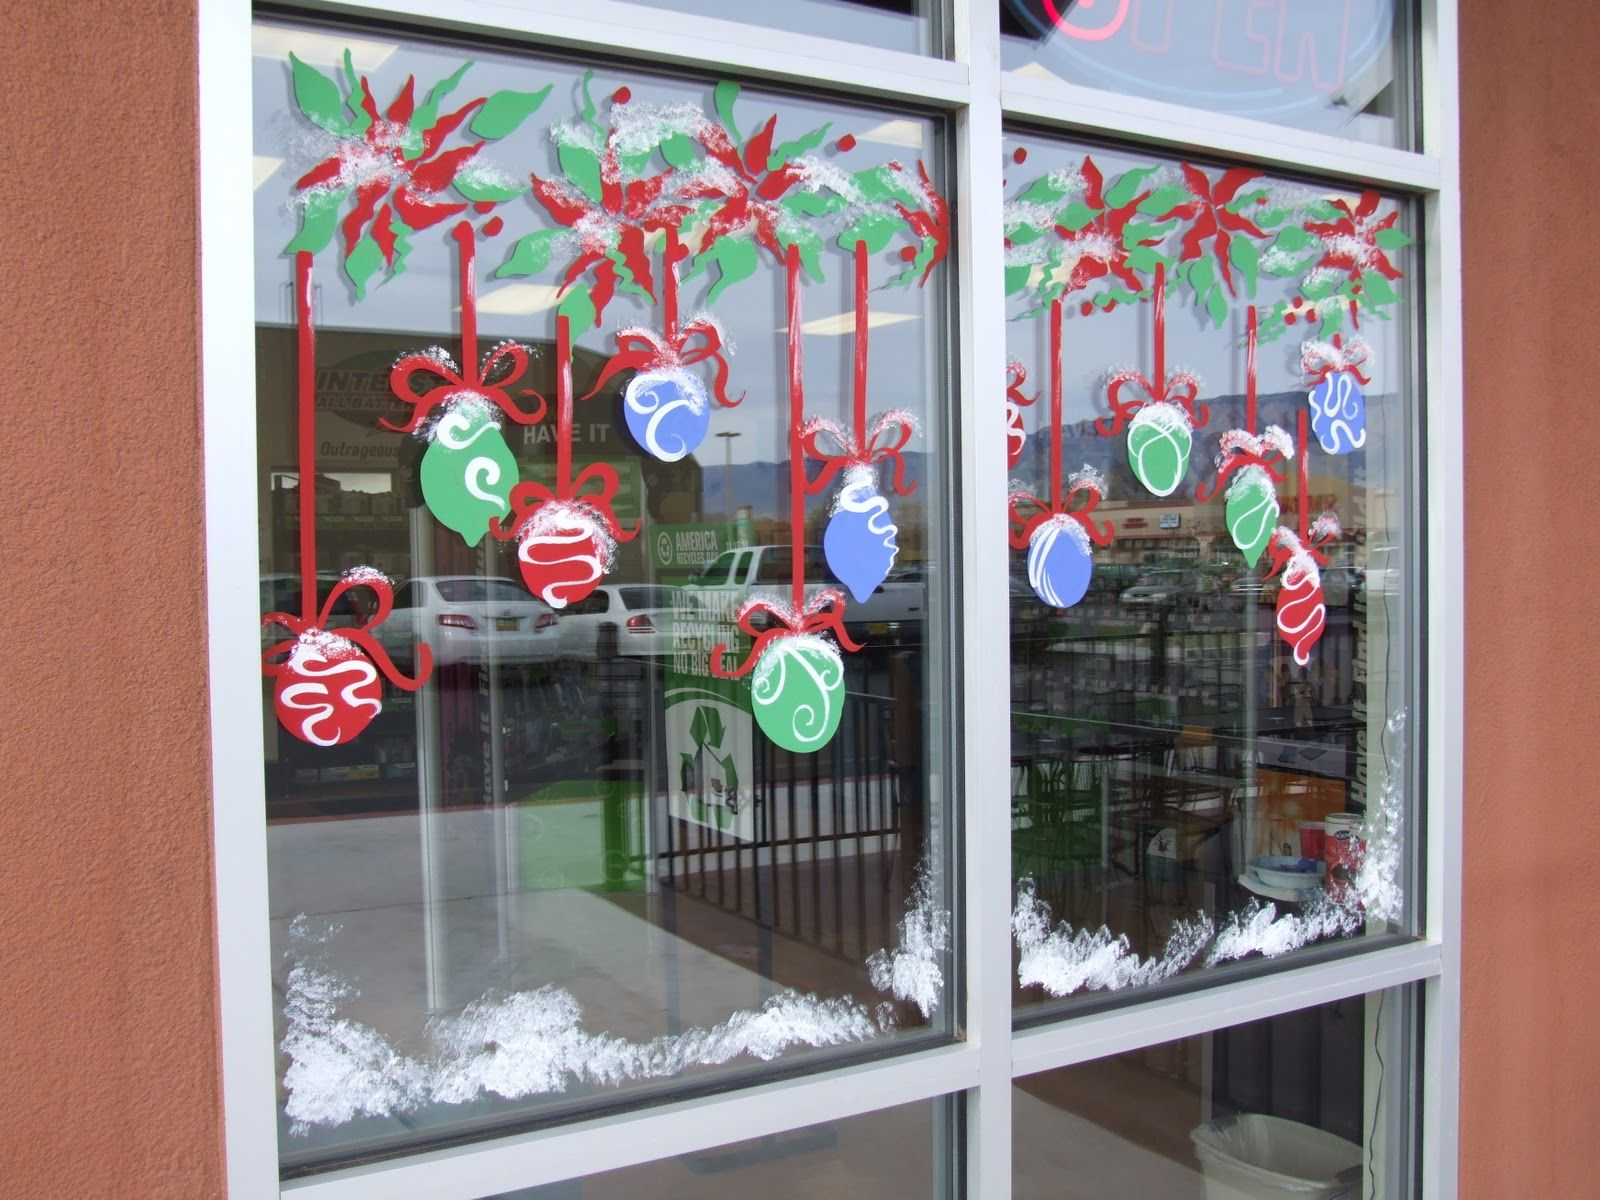 christmas window decorations image result for window painting ideas holidays 30179